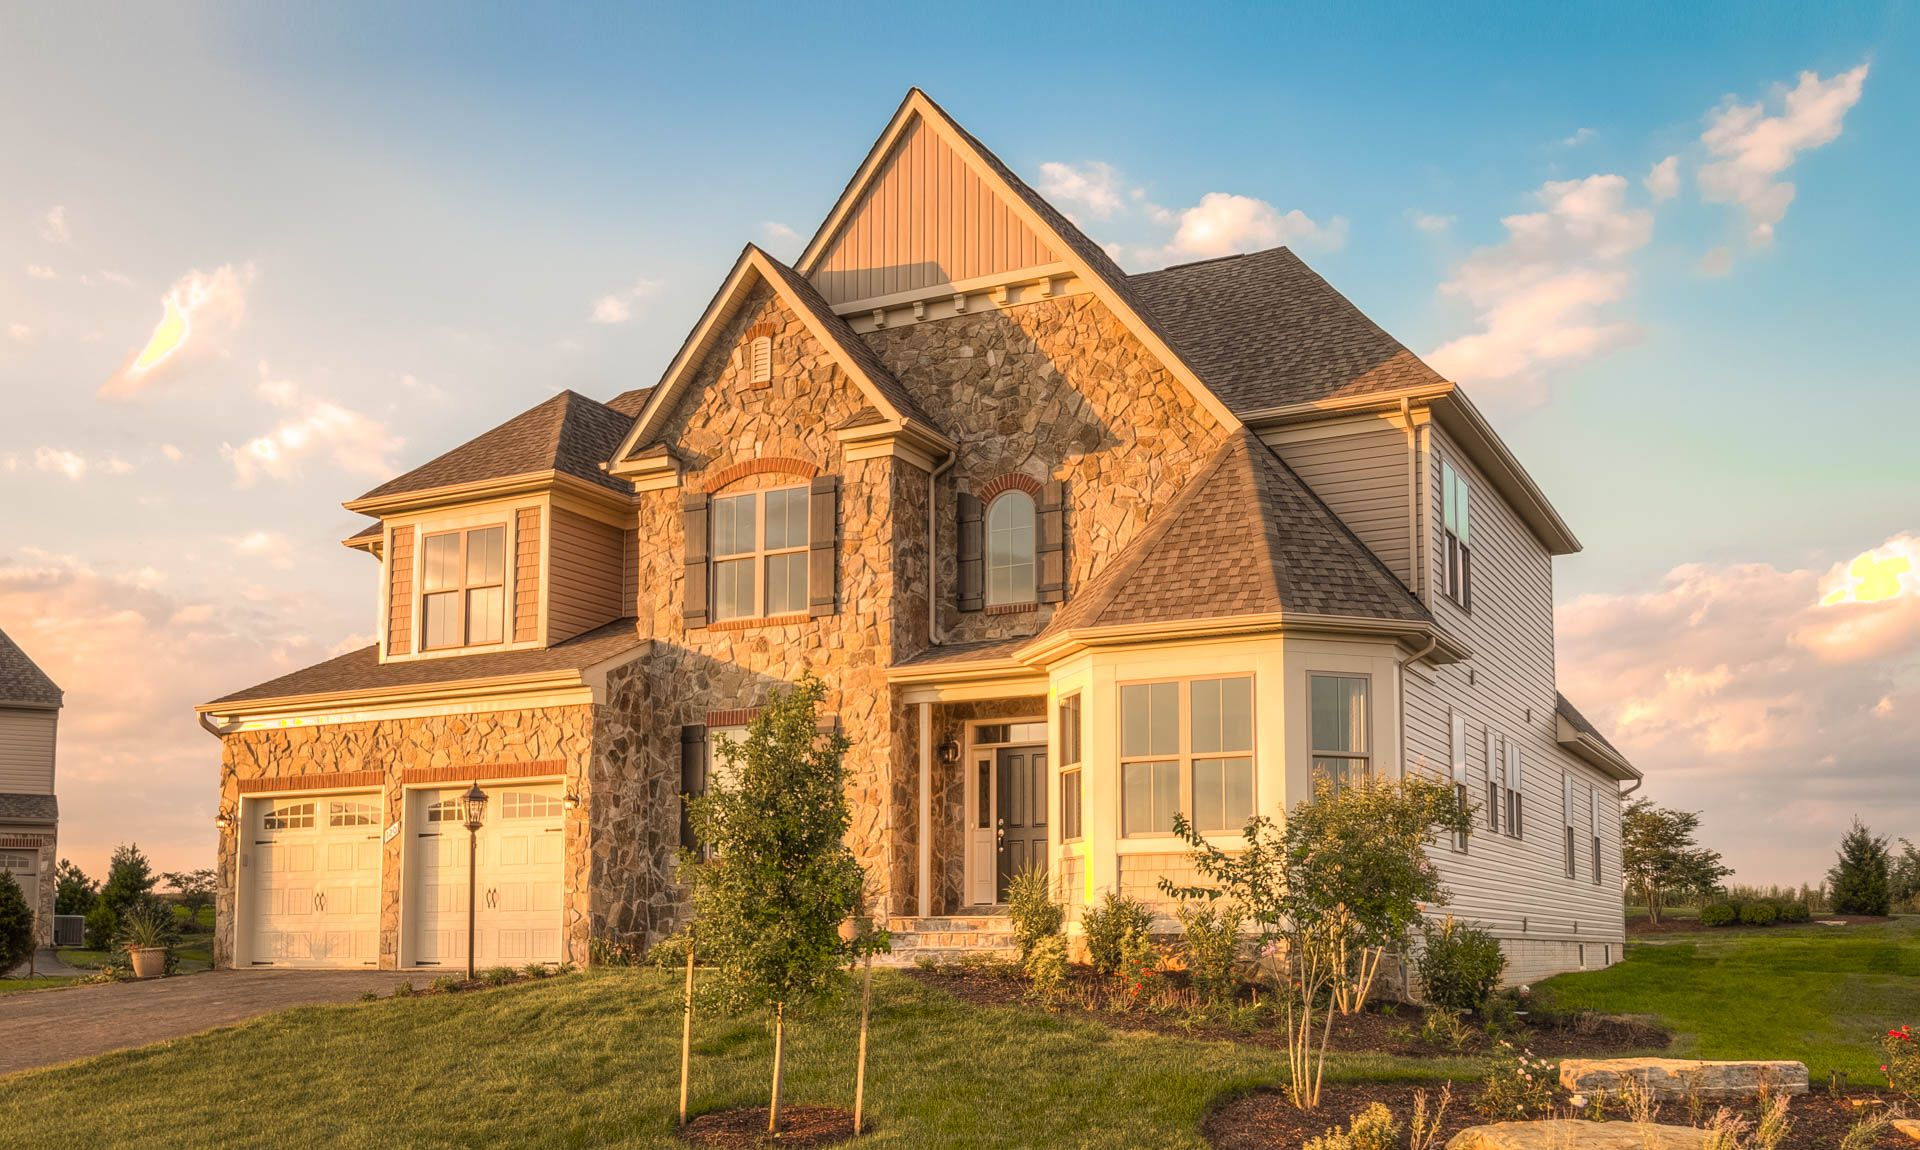 Single Family for Active at The Mount Vernon Collection At Brentwood Springs - The Balmoral 17289 Creekside Green Place Round Hill, Virginia 20141 United States